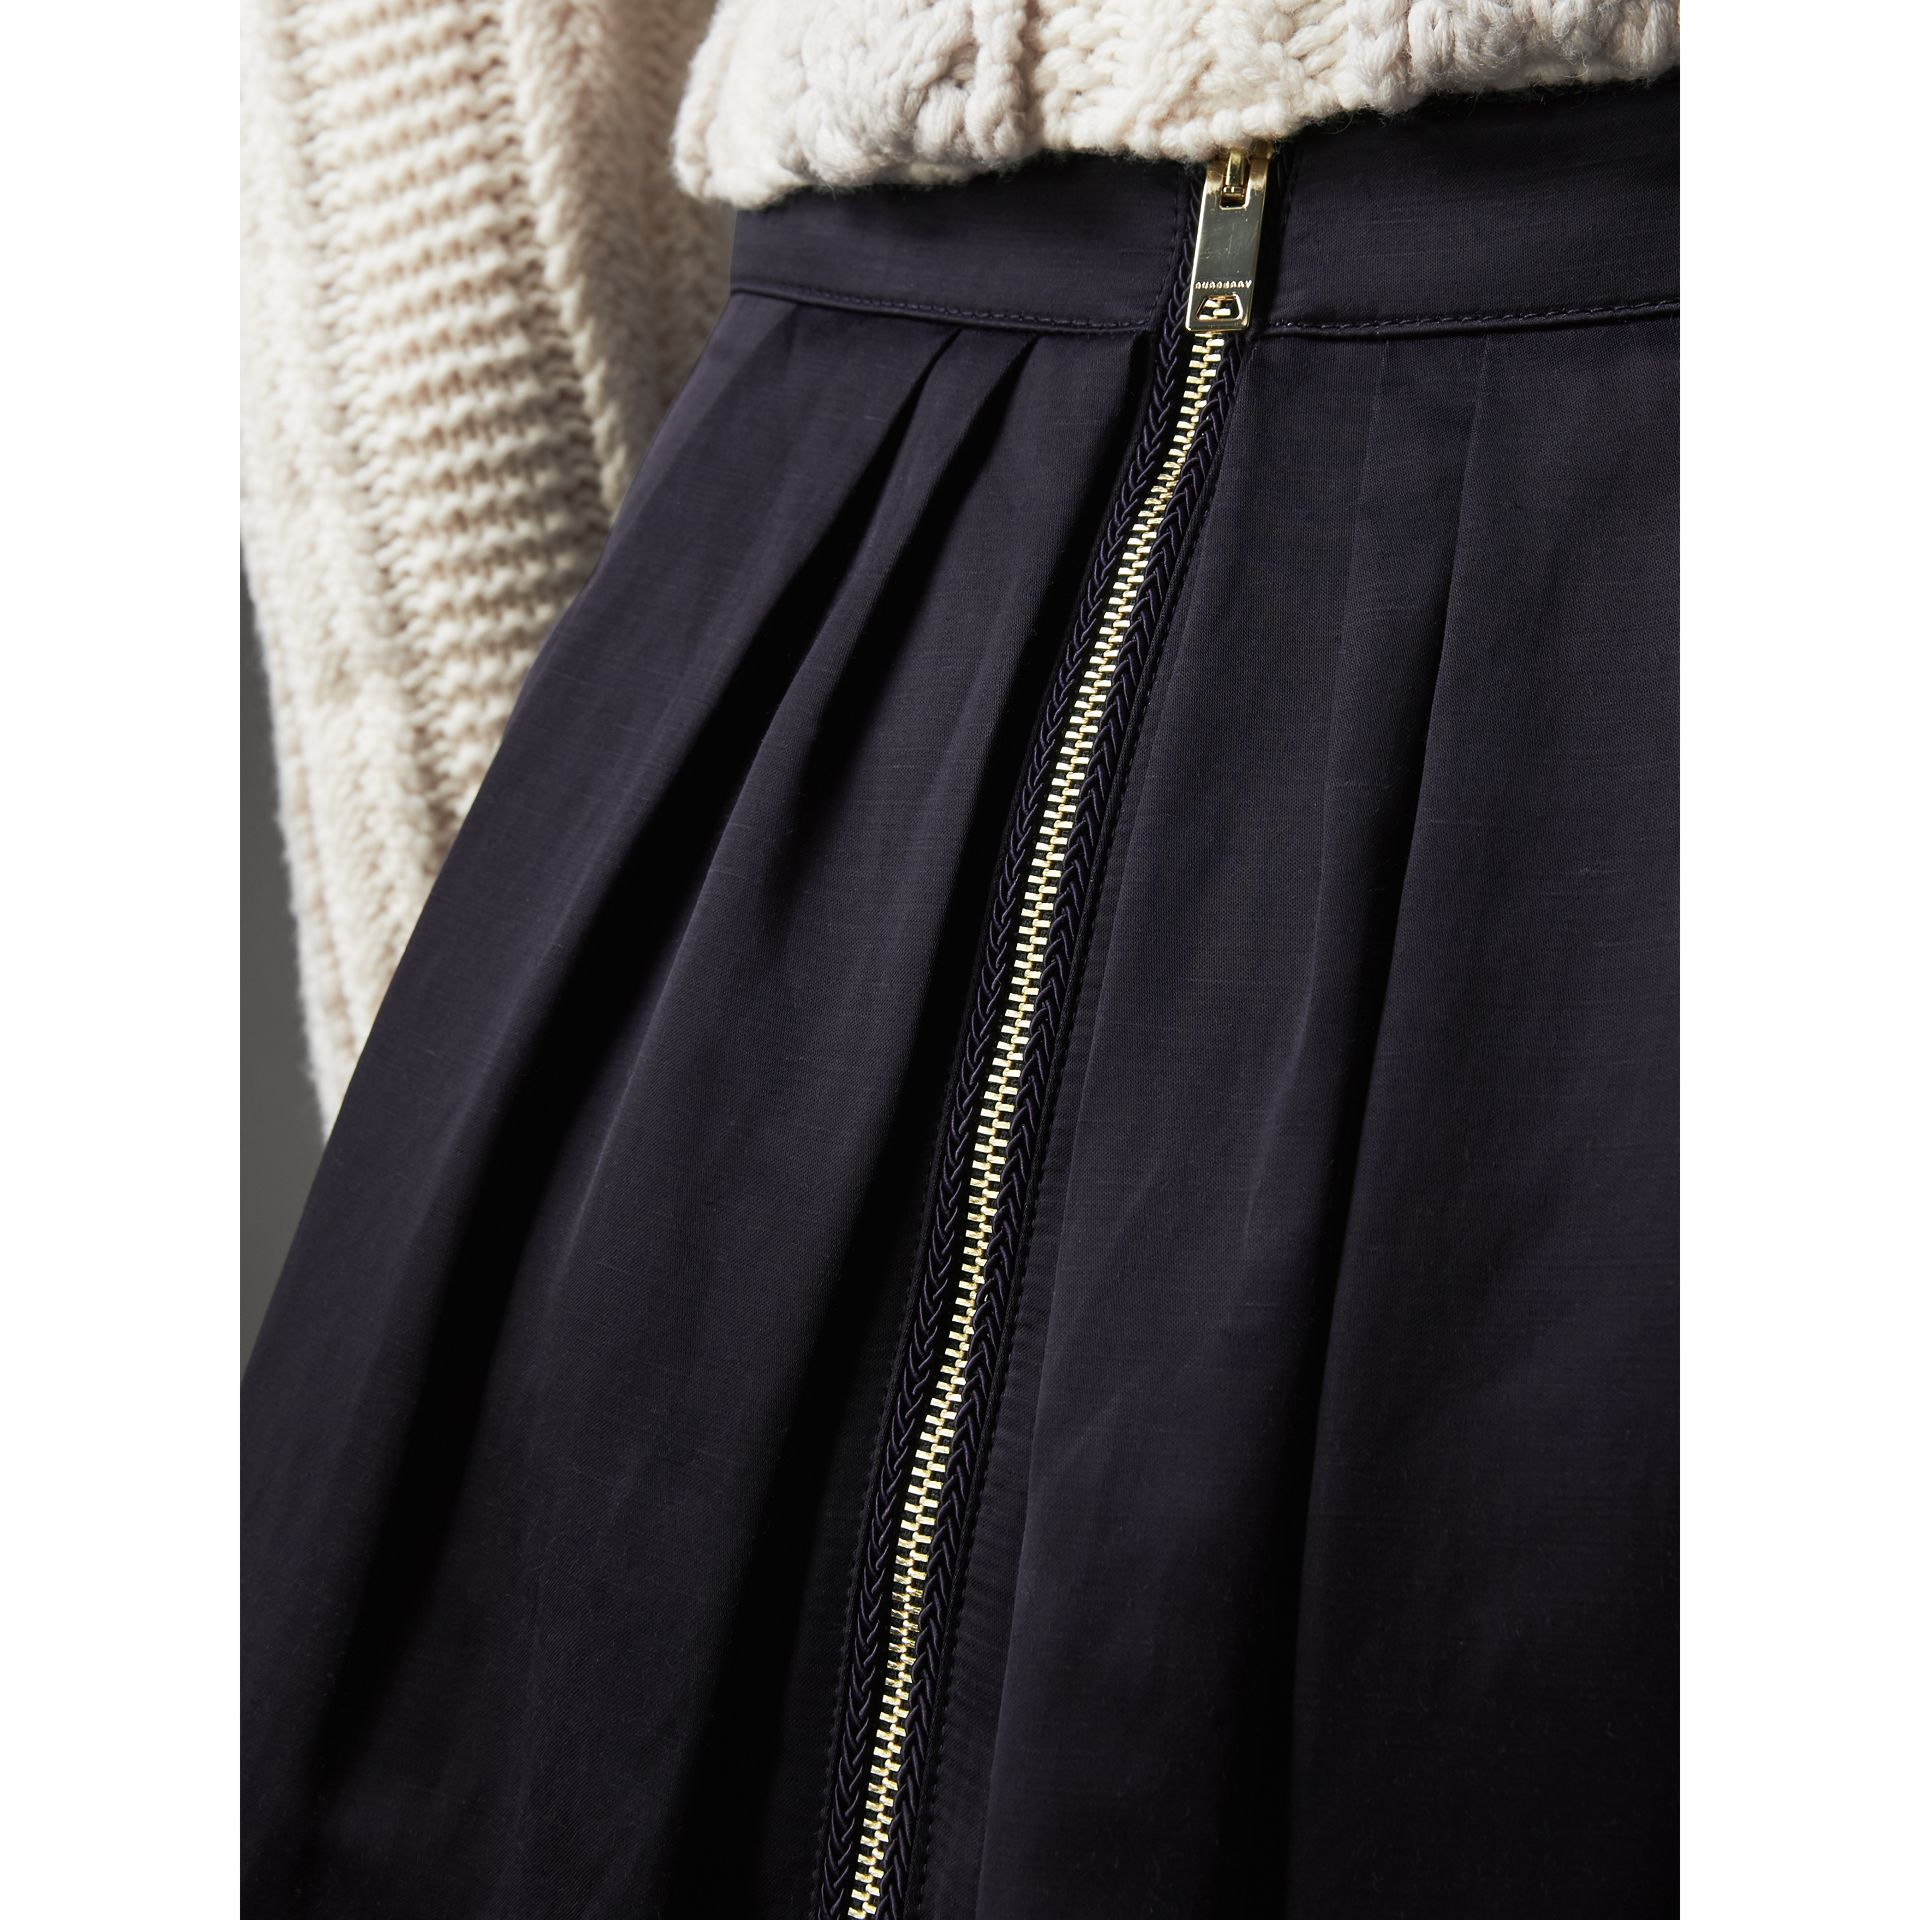 Pleated Linen Cotton Blend Skirt in Navy - Women | Burberry - gallery image 2